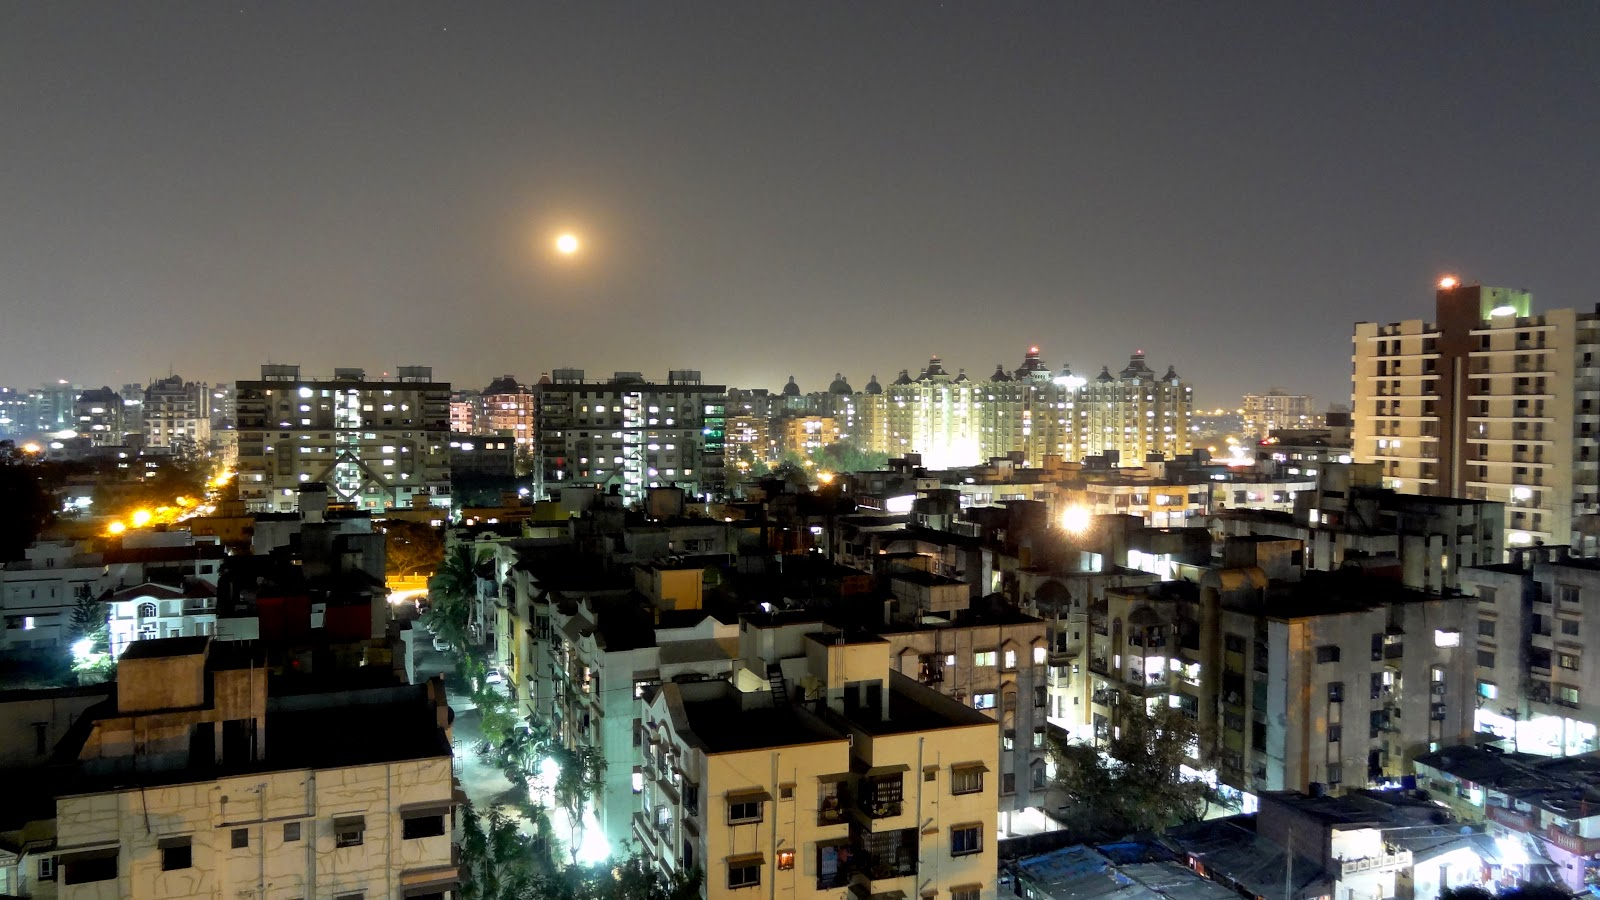 Surat_at_night.JPG